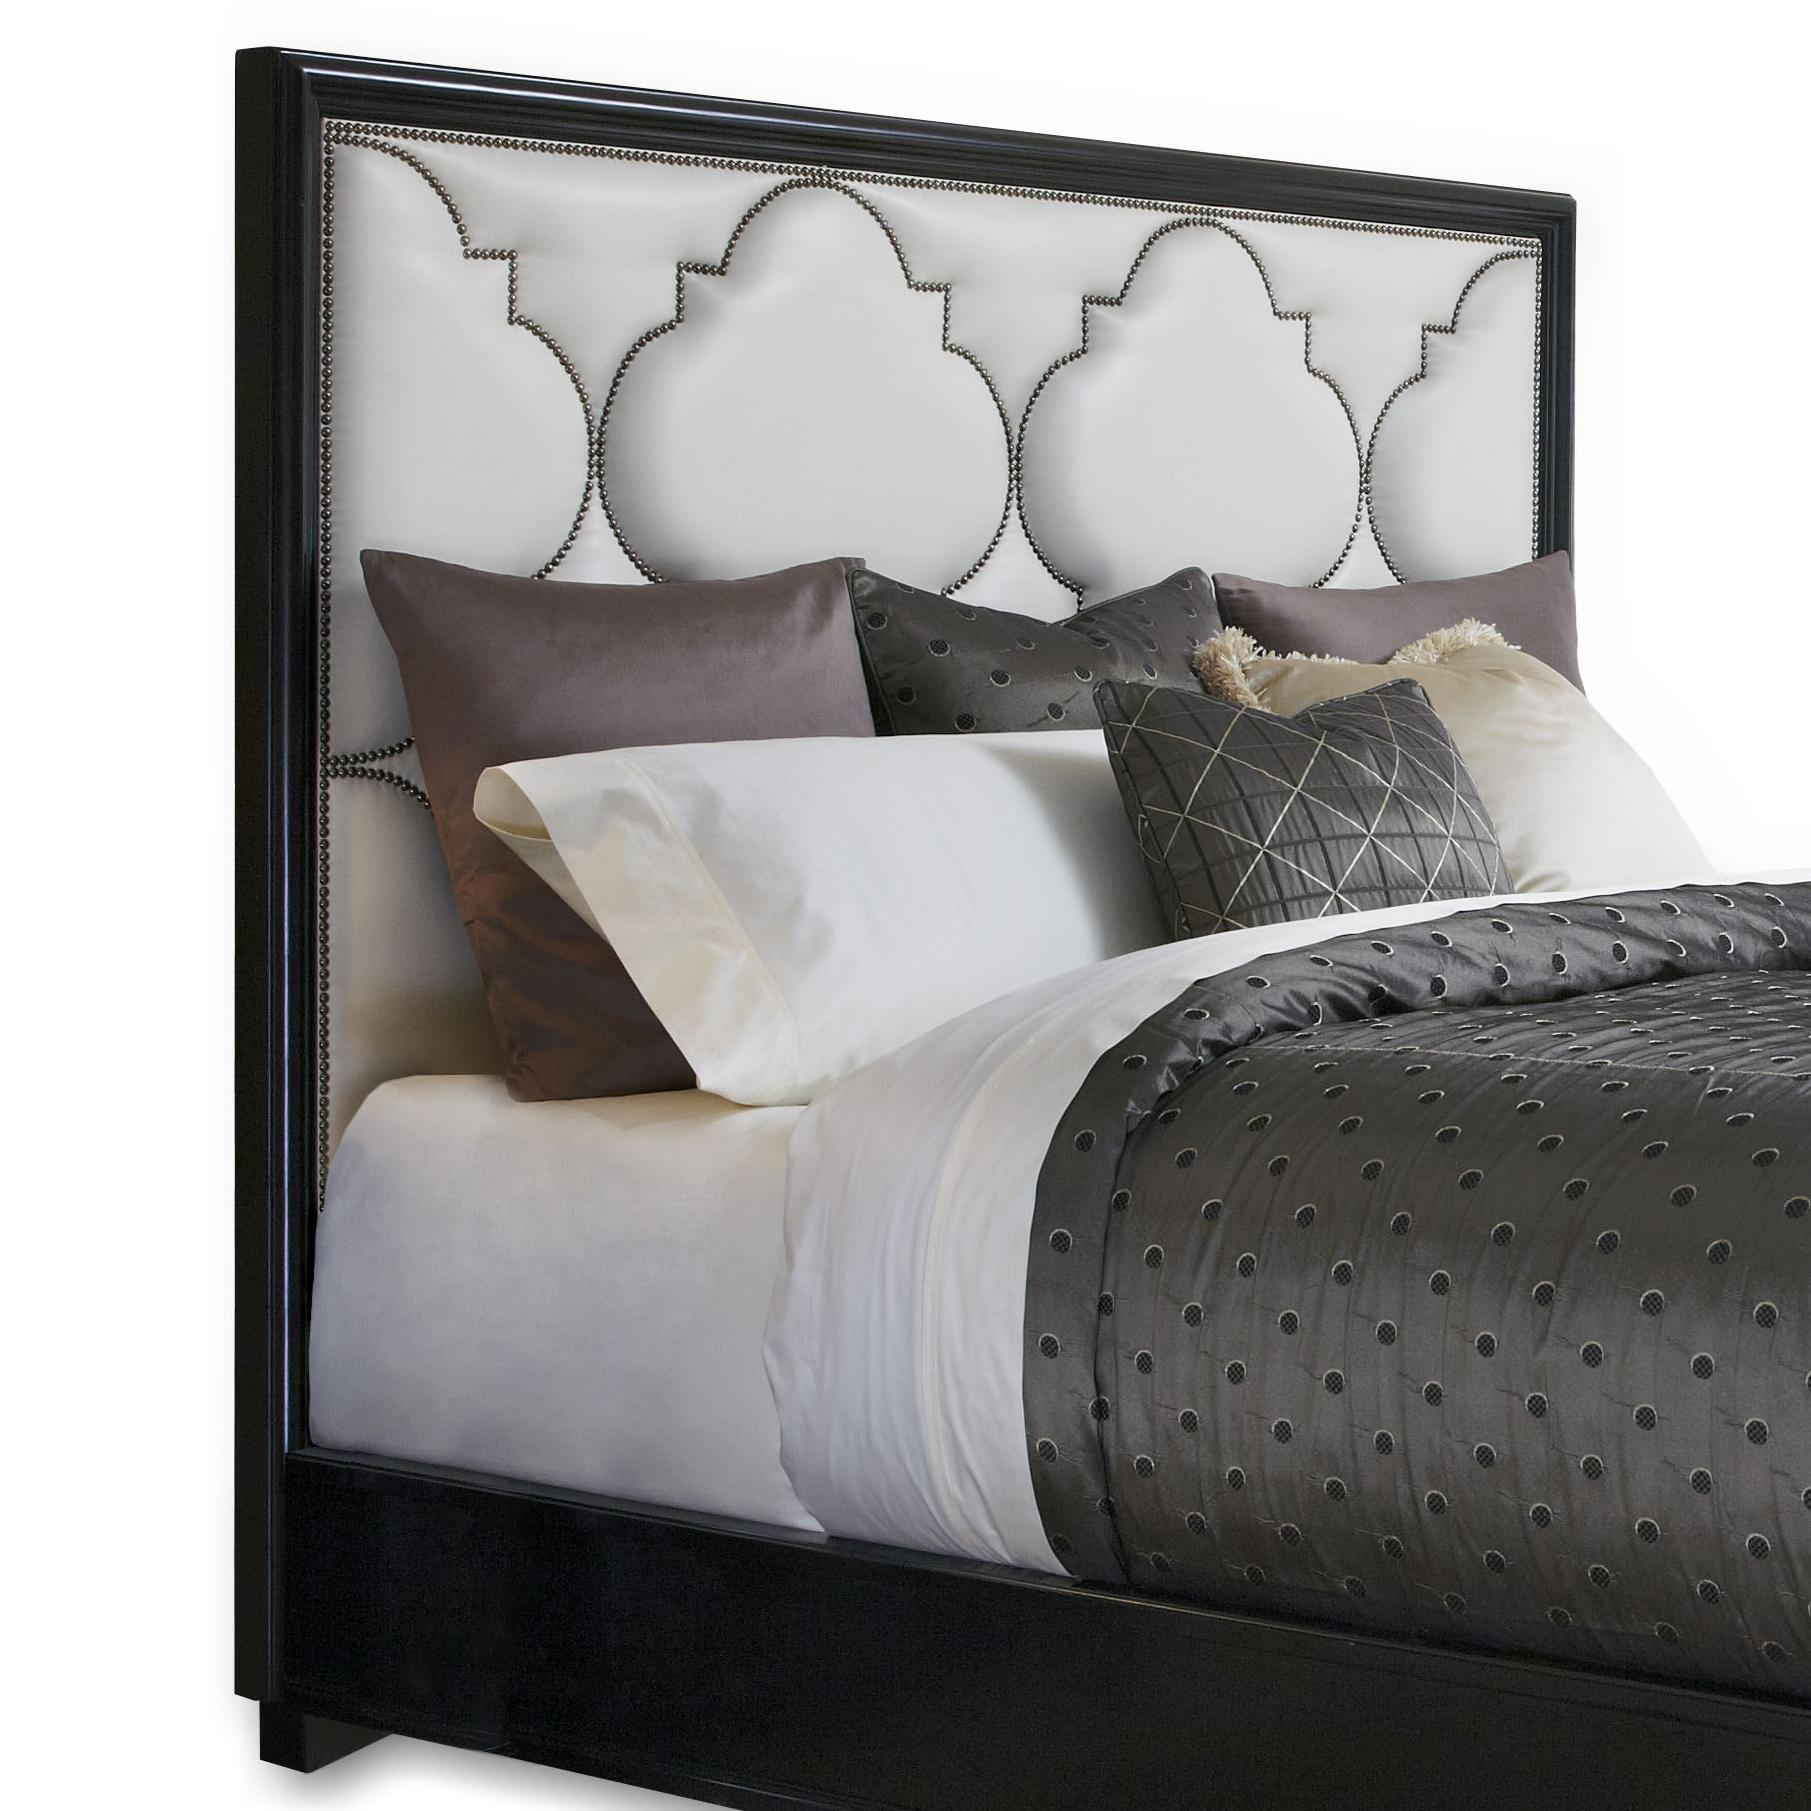 A.R.T. Furniture Inc Cosmopolitan King Upholstered Panel Bed Headboard - Item Number: 208136-1815HB